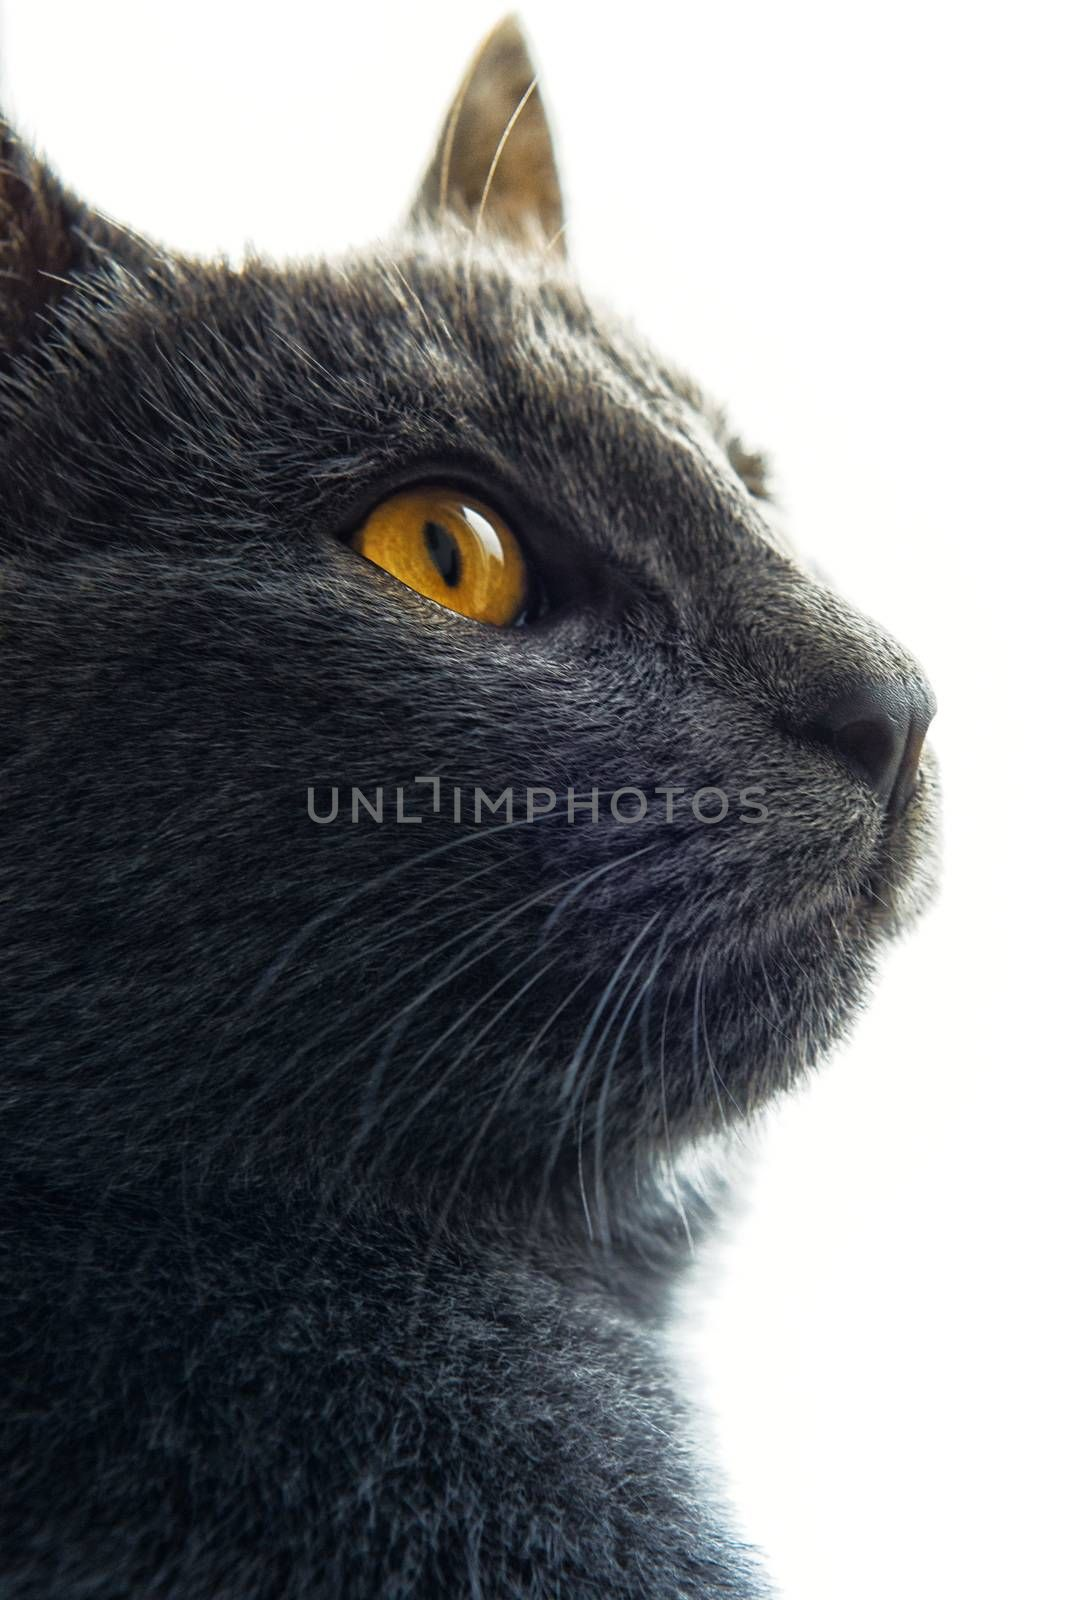 Gray cat with yellow eyes looking up